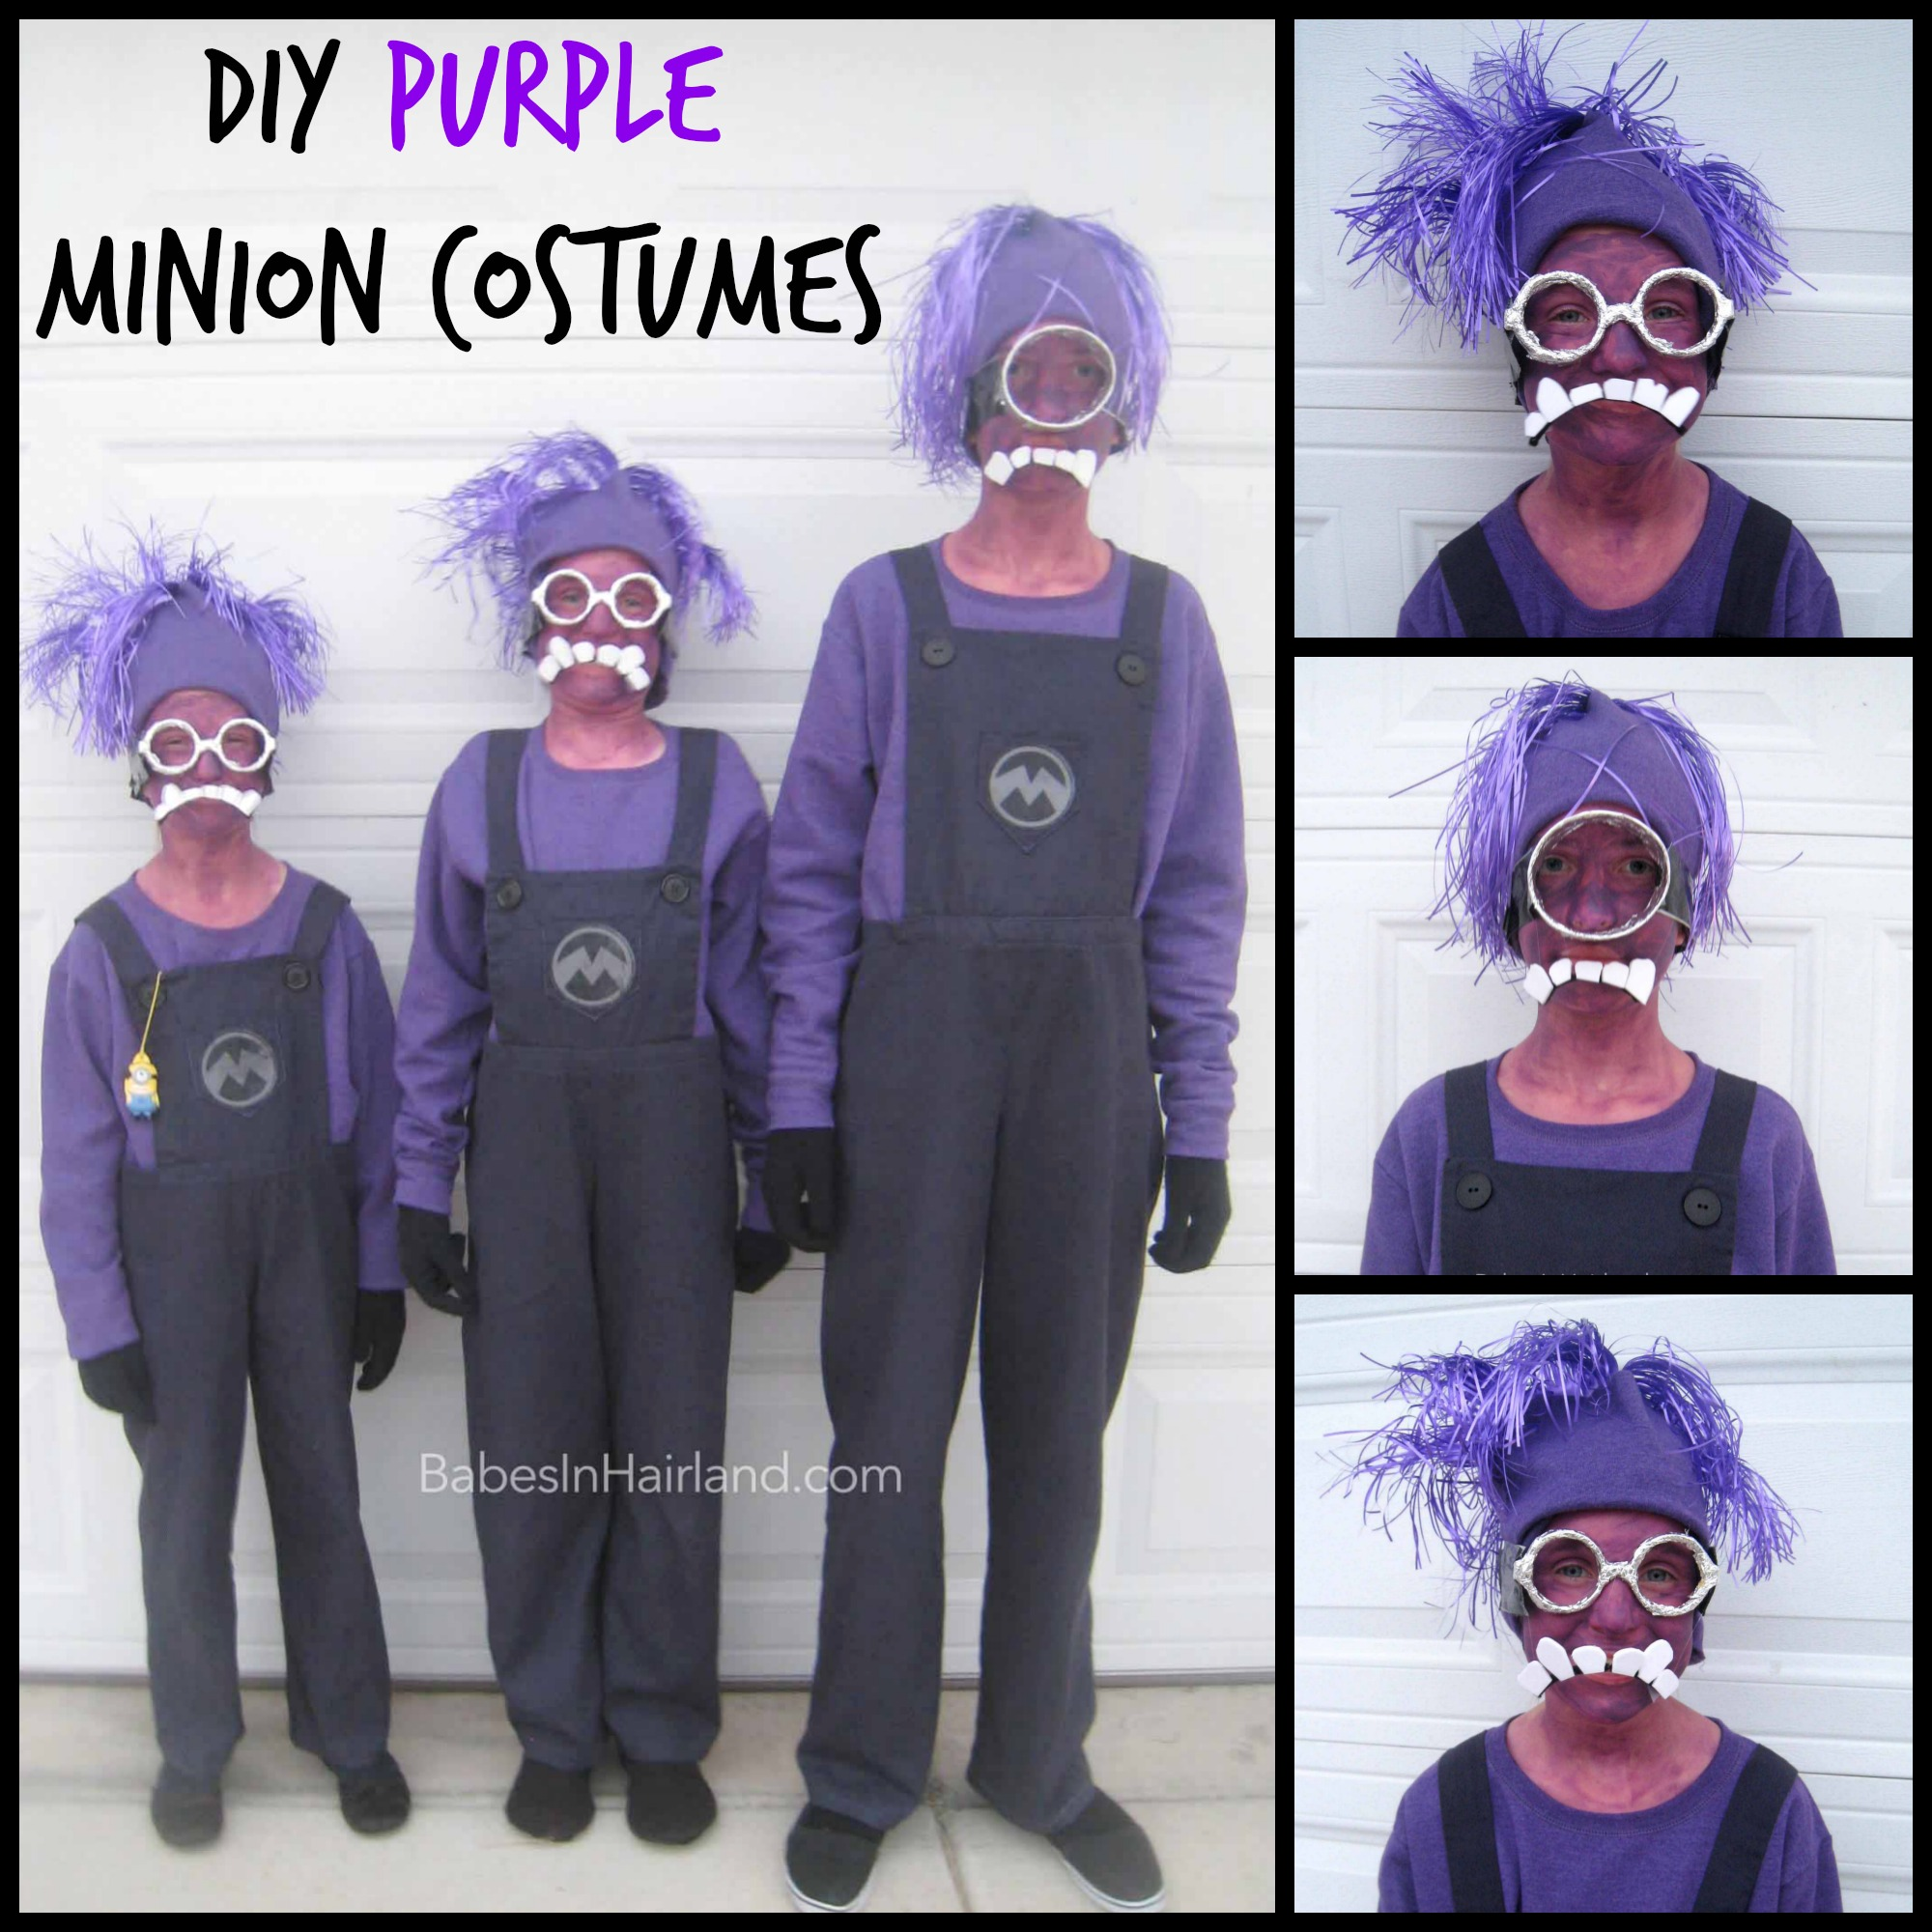 DIY Purple Minion Costumes from BabesInHairland.com